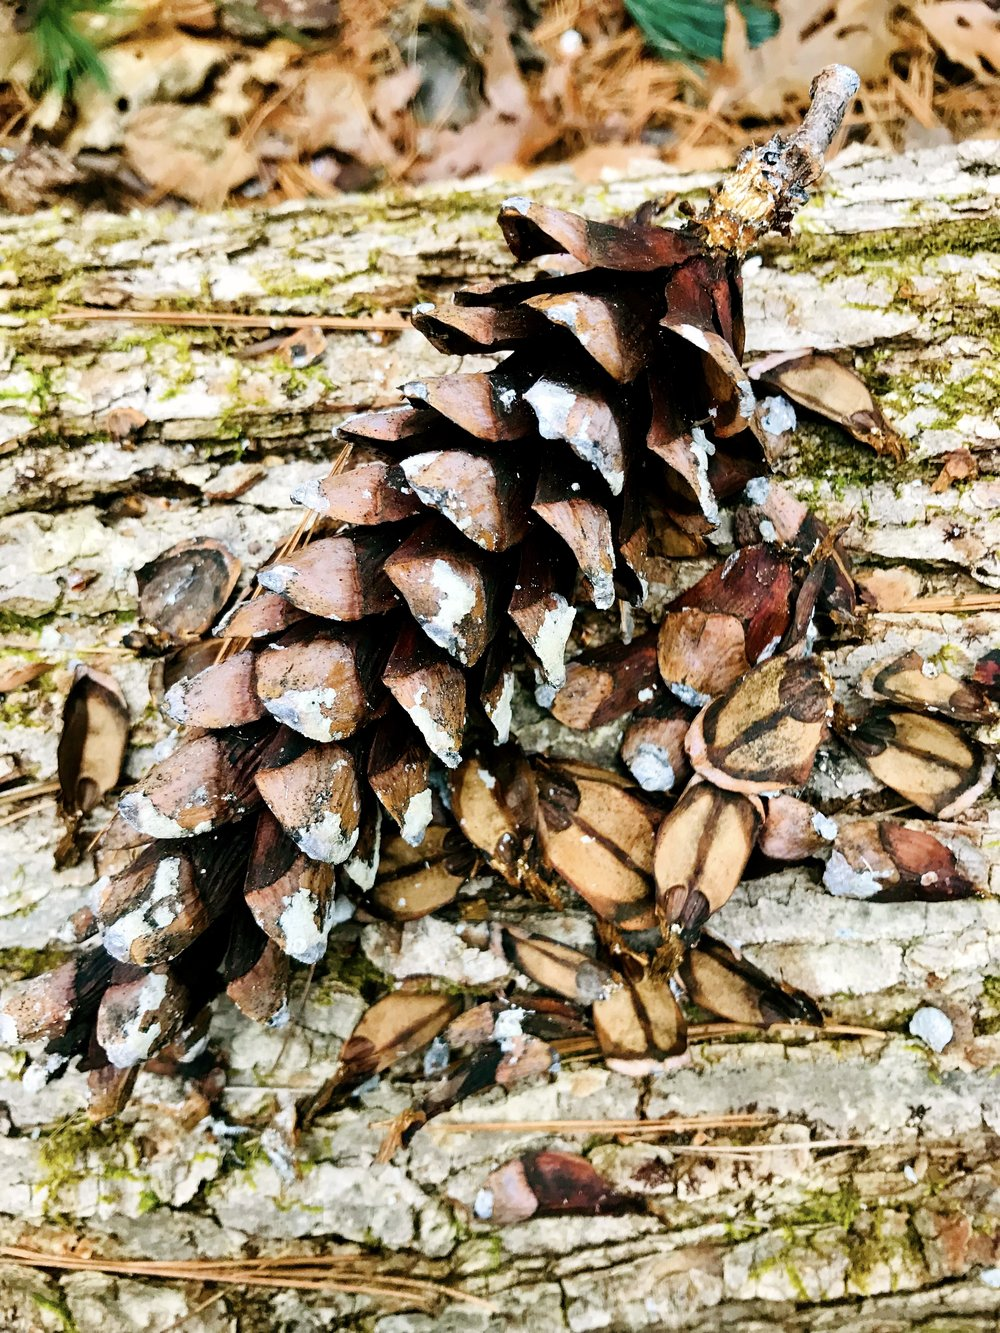 Who eats the pine cones?